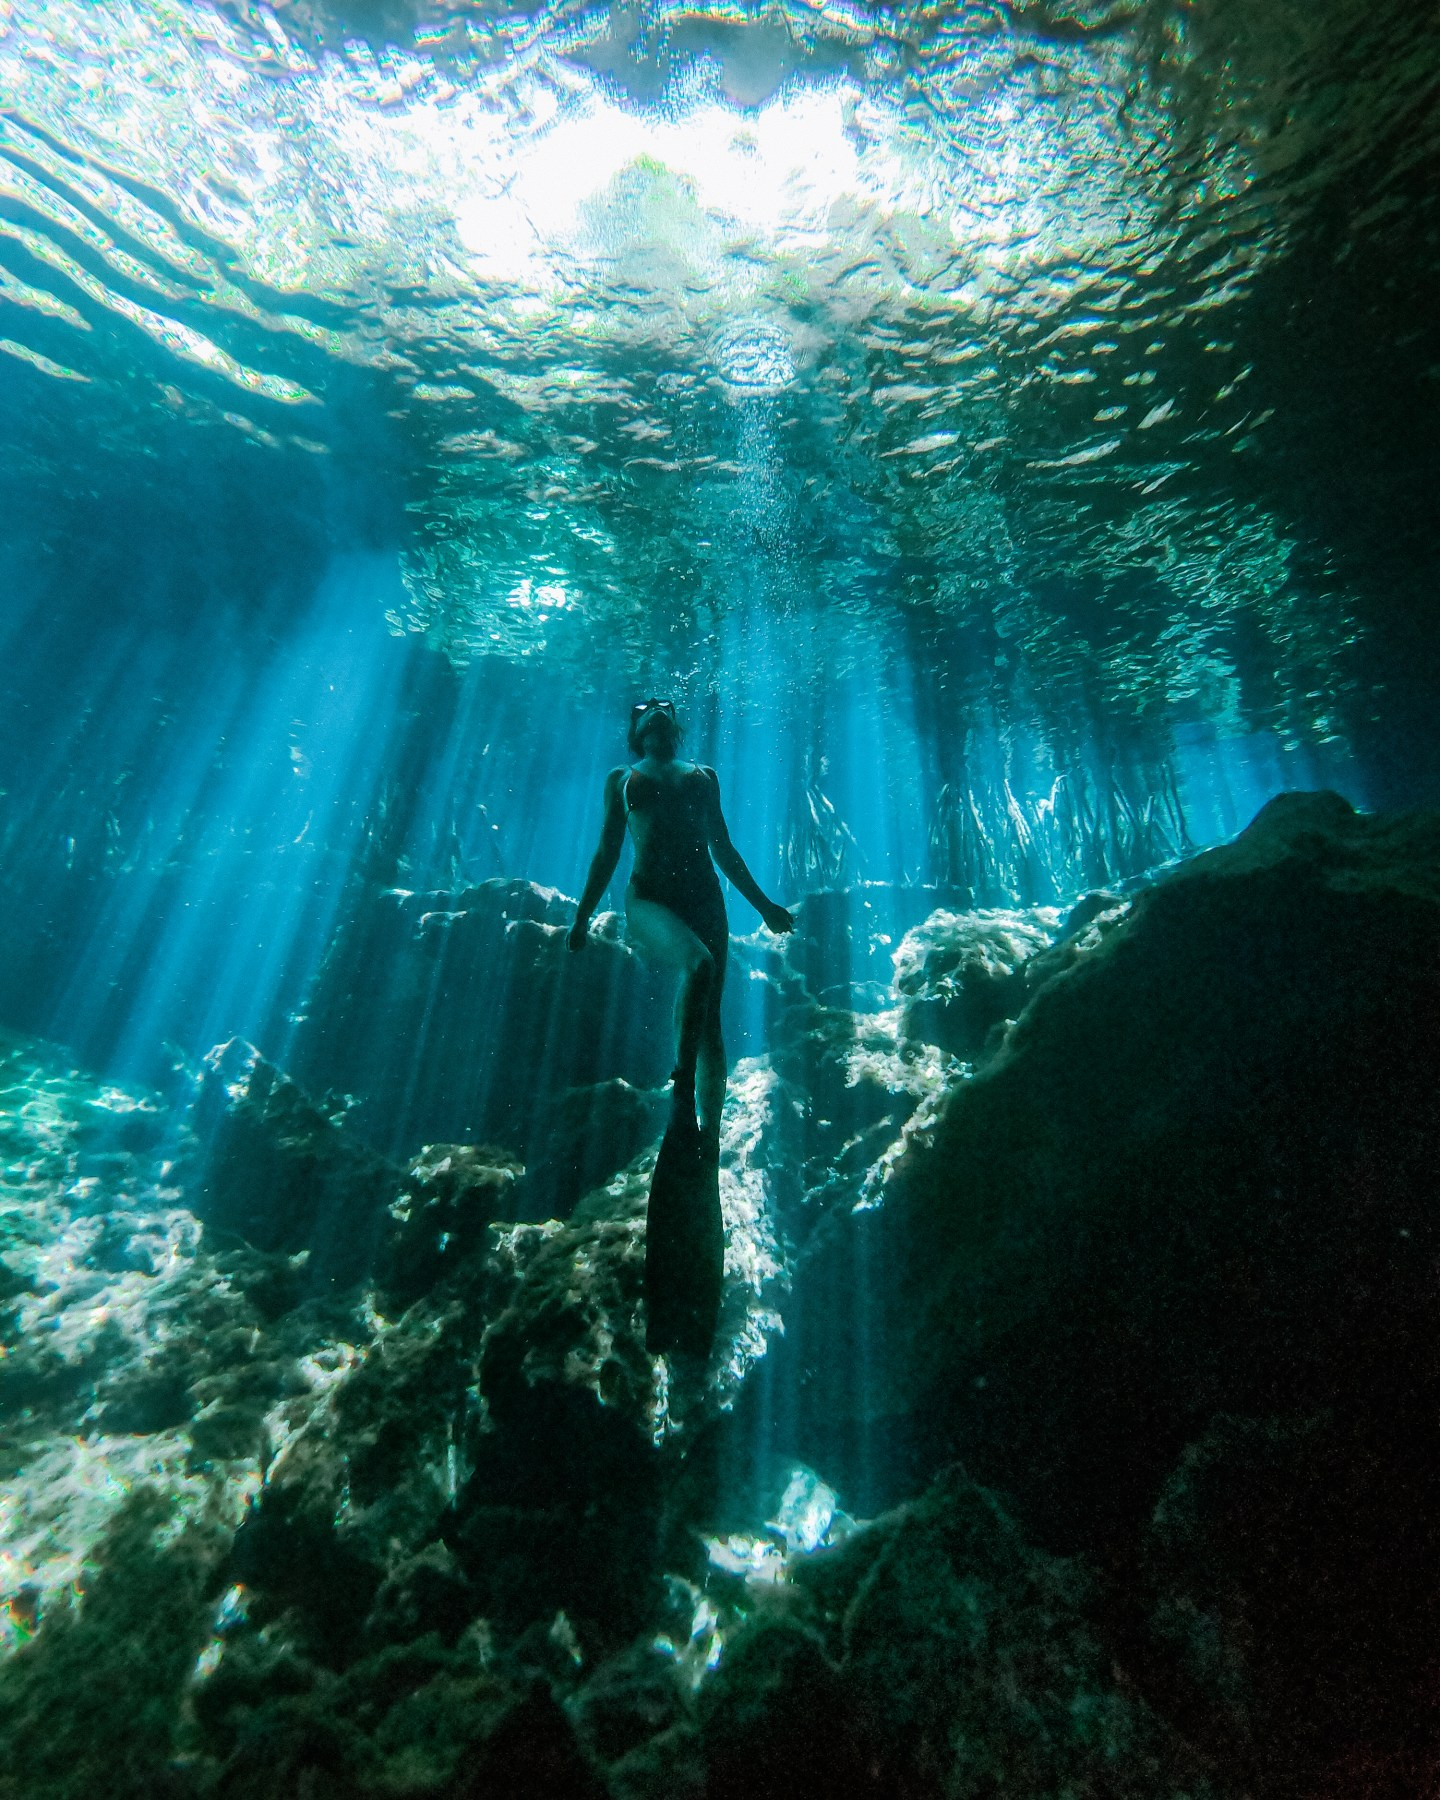 Cenote Cristalino Quintana Roo. This guide gives you tips for all of the best cenotes in Tulum and the best cenotes near Tulum including what to pack for the best Tulum cenotes and more. If you are looking for day trips from Tulum, check out the best cenotes in Quintana Roo and best cenotes in Yucatan for ideas! | Tulum cenotes photography | cenotes Mexico tulum | cenotes tulum riviera maya | best cenotes in quintana roo | cenotes quintana roo | cenotes in playa del carmen